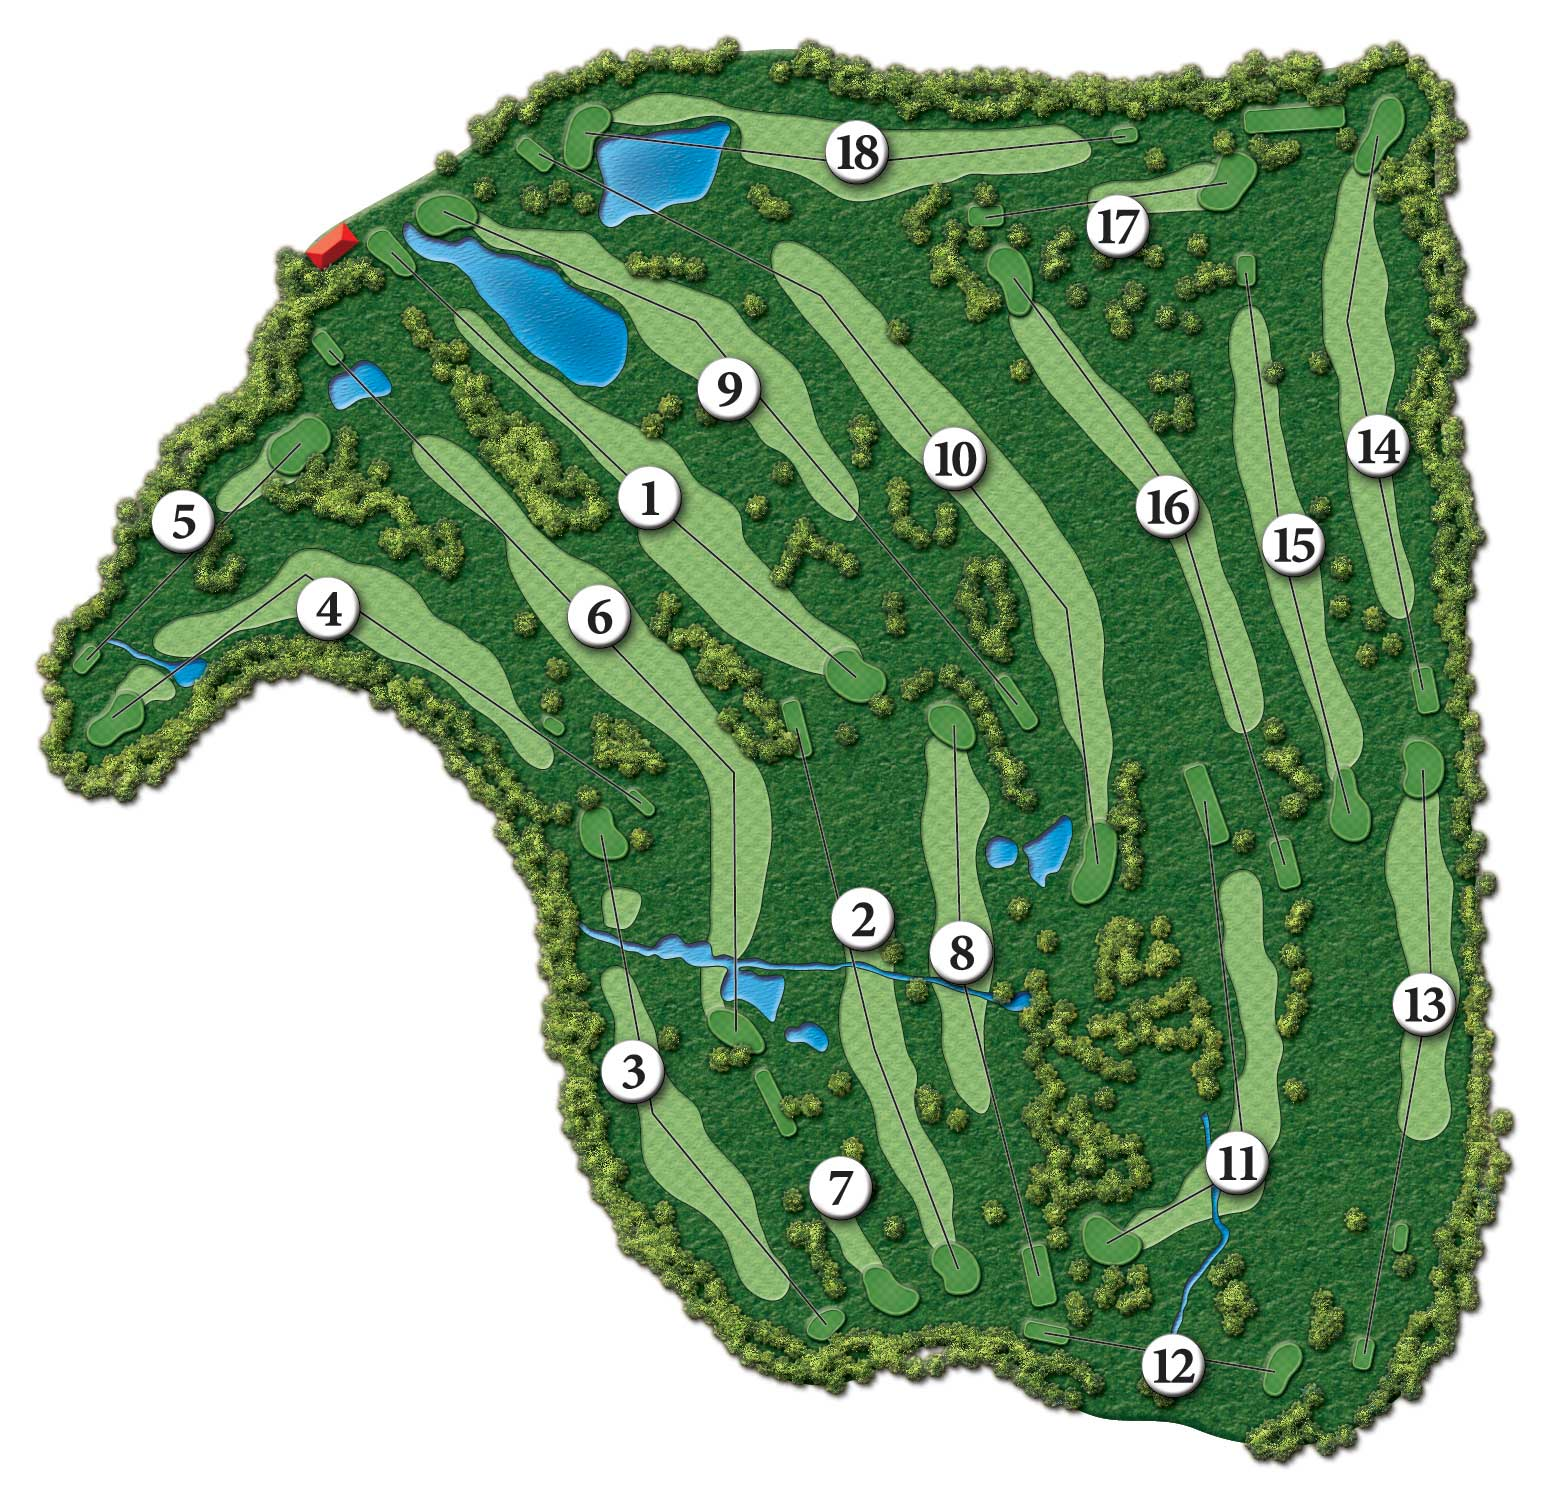 Course Map | Tamarack Golf Club | Oswego,NY - Scriba,NY on golf packages, modern art map, volleyball map, golf holidays, us road map, civilization world map, golf tours, golf real estate, football soccer map,